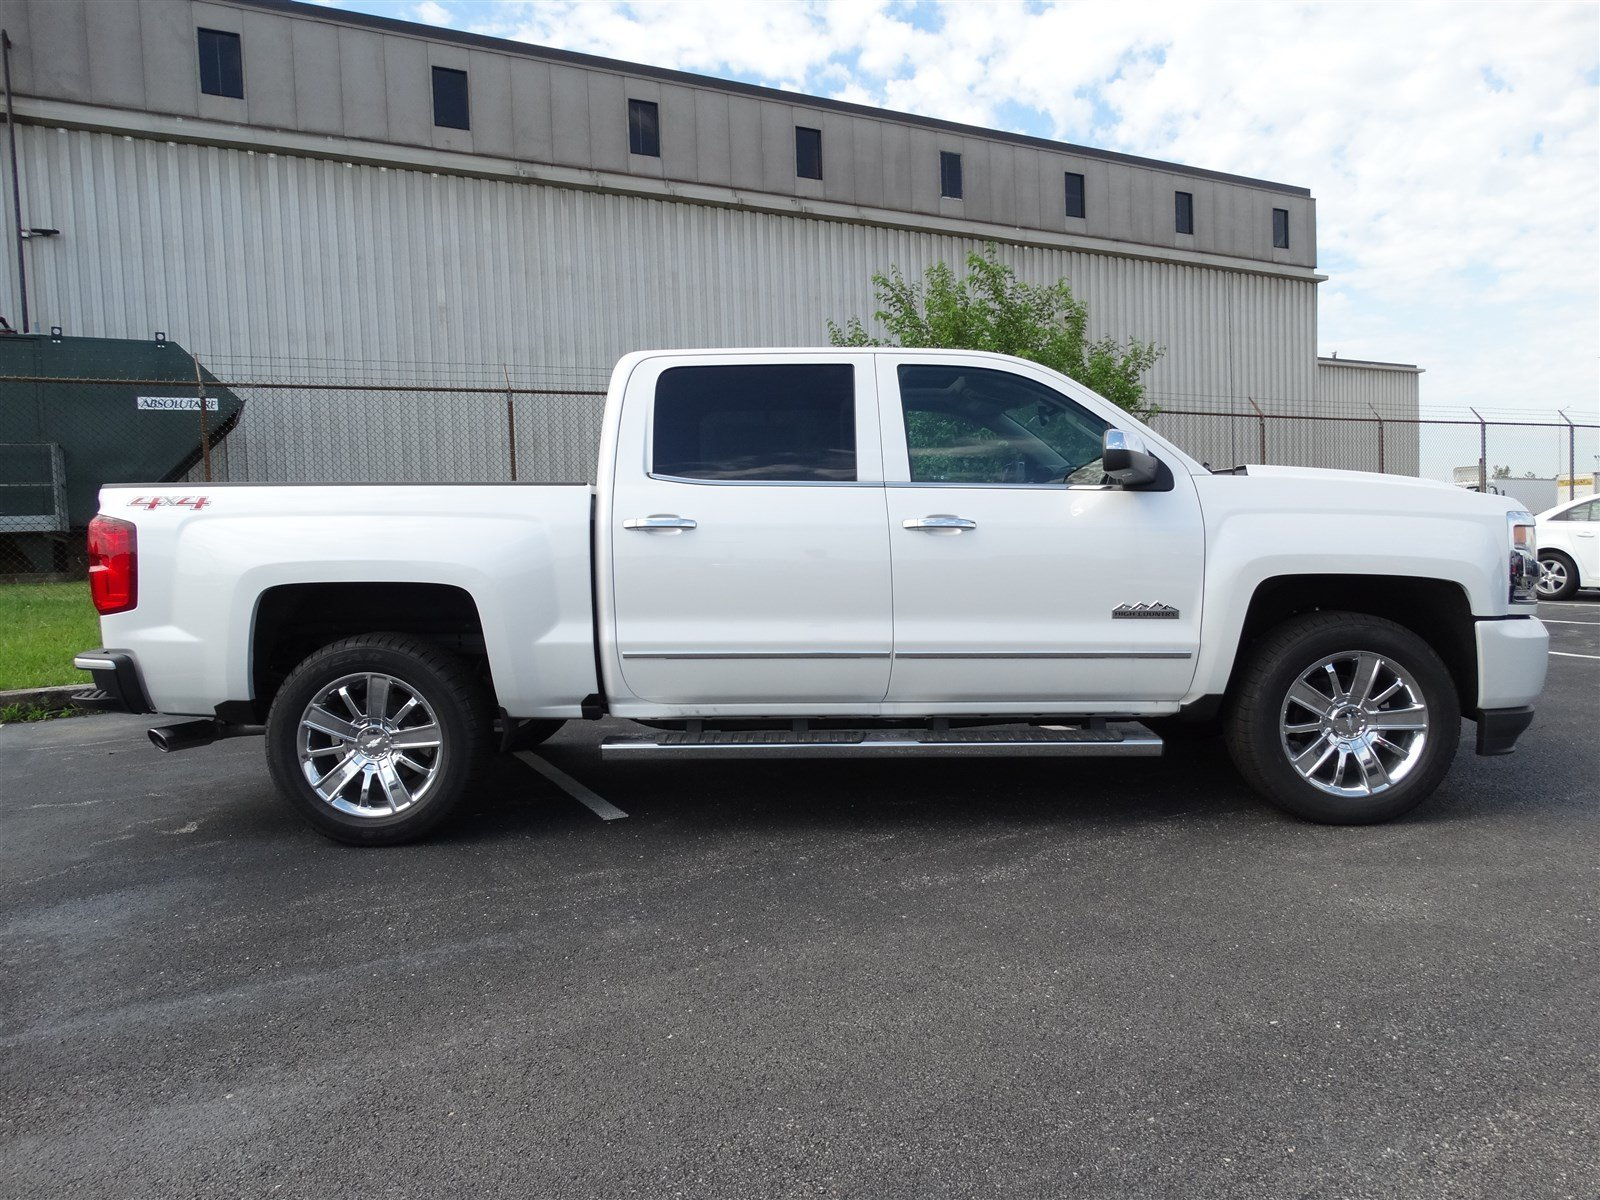 new 2017 chevrolet silverado 1500 high country crew cab pickup in naperville t6125 chevrolet. Black Bedroom Furniture Sets. Home Design Ideas